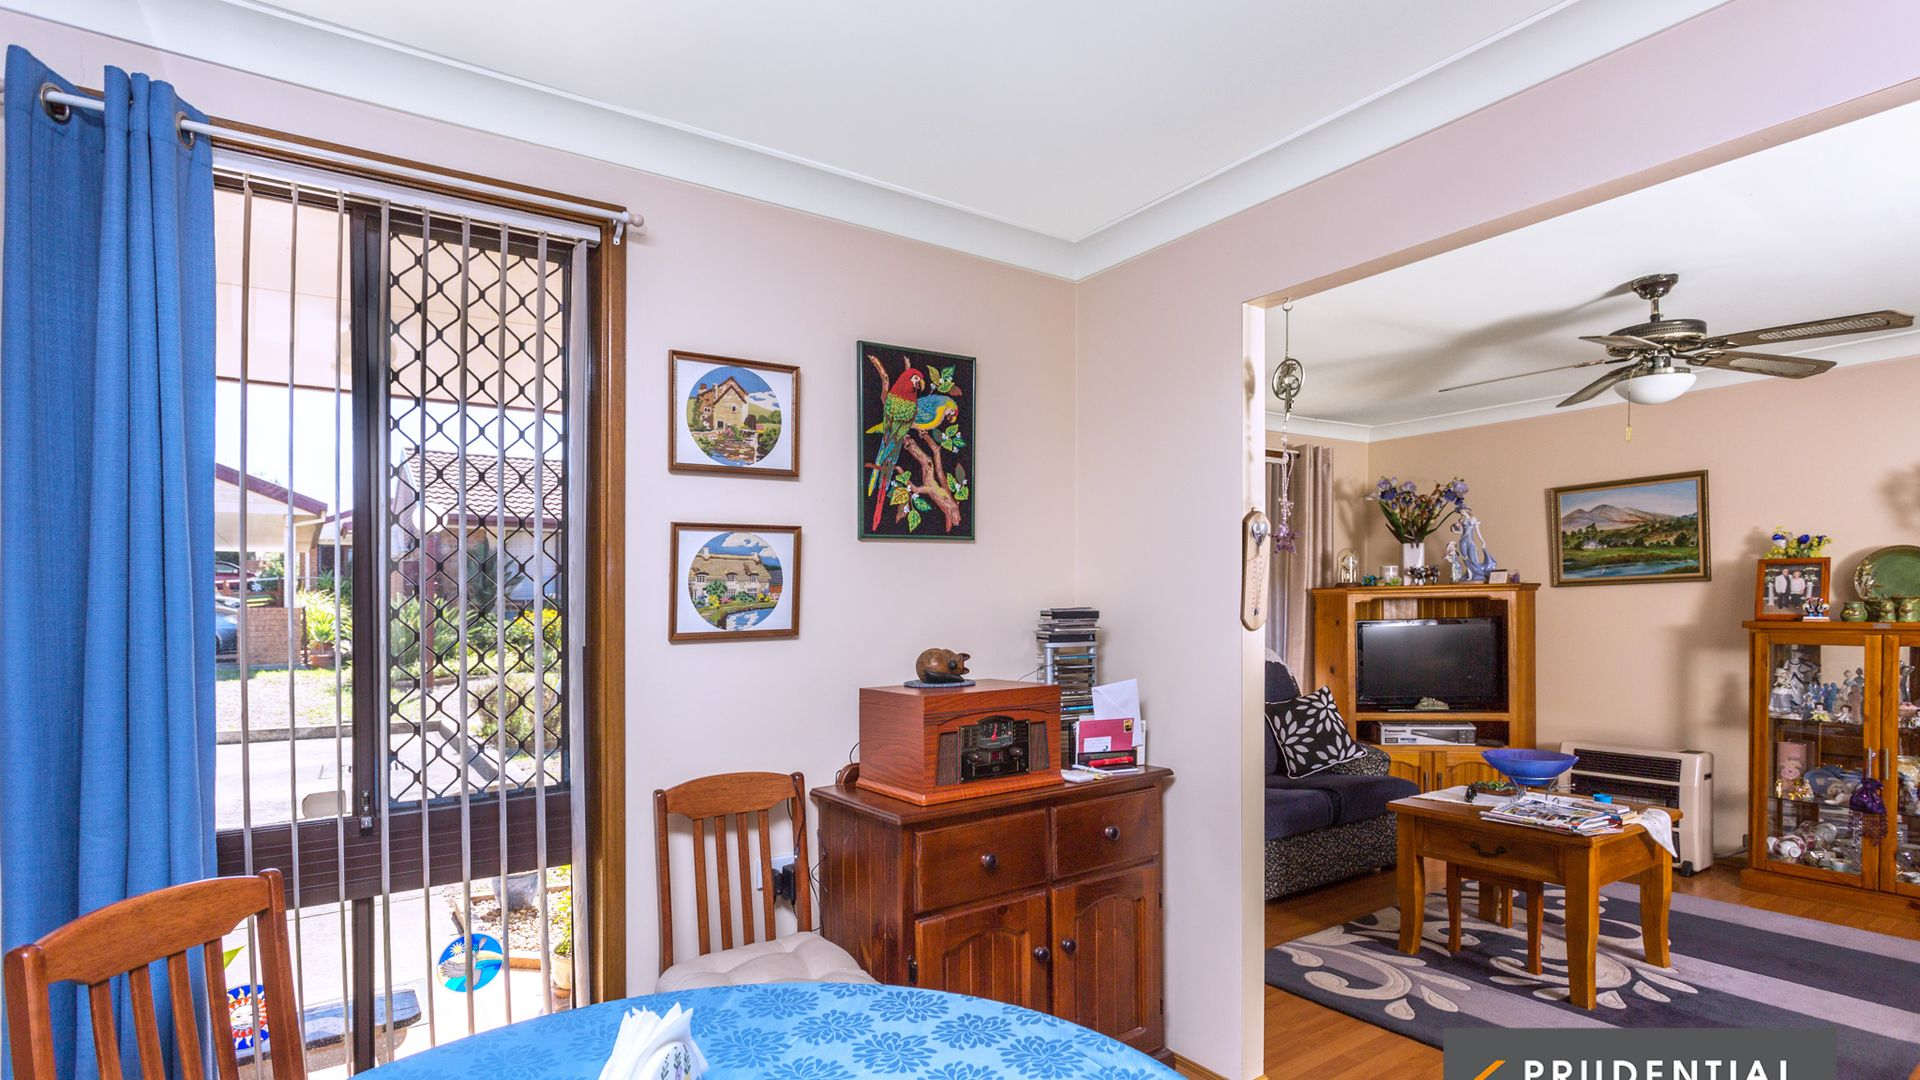 21/45 Pine Road, Casula NSW 2170, Image 2